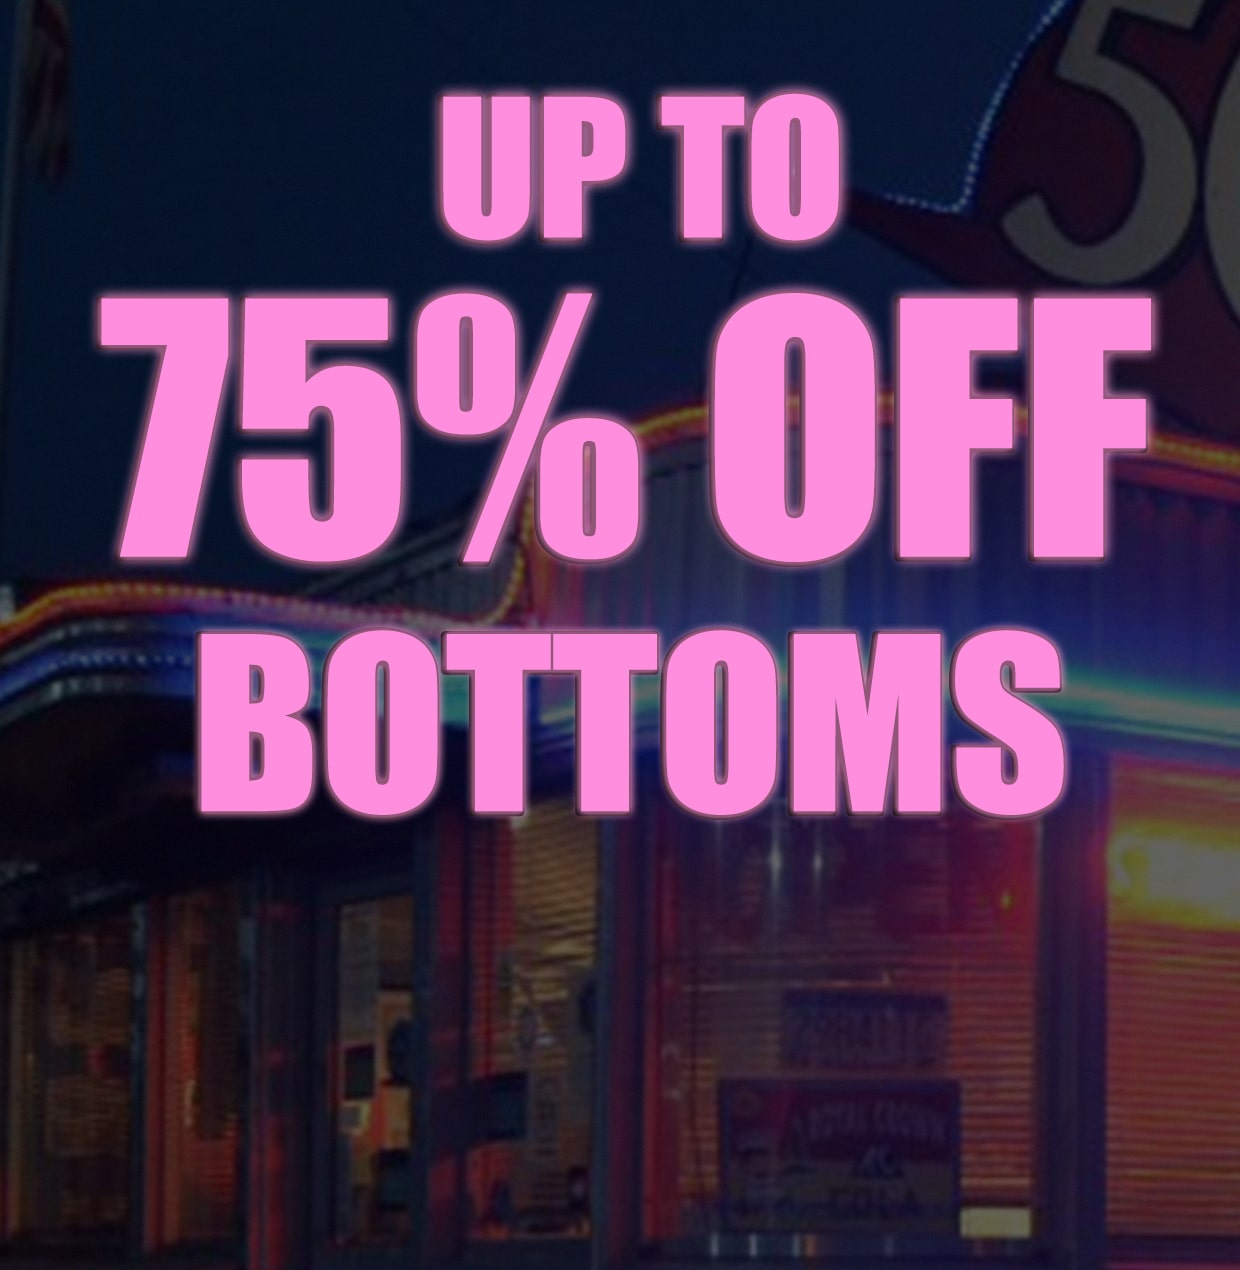 upto 60% off everything